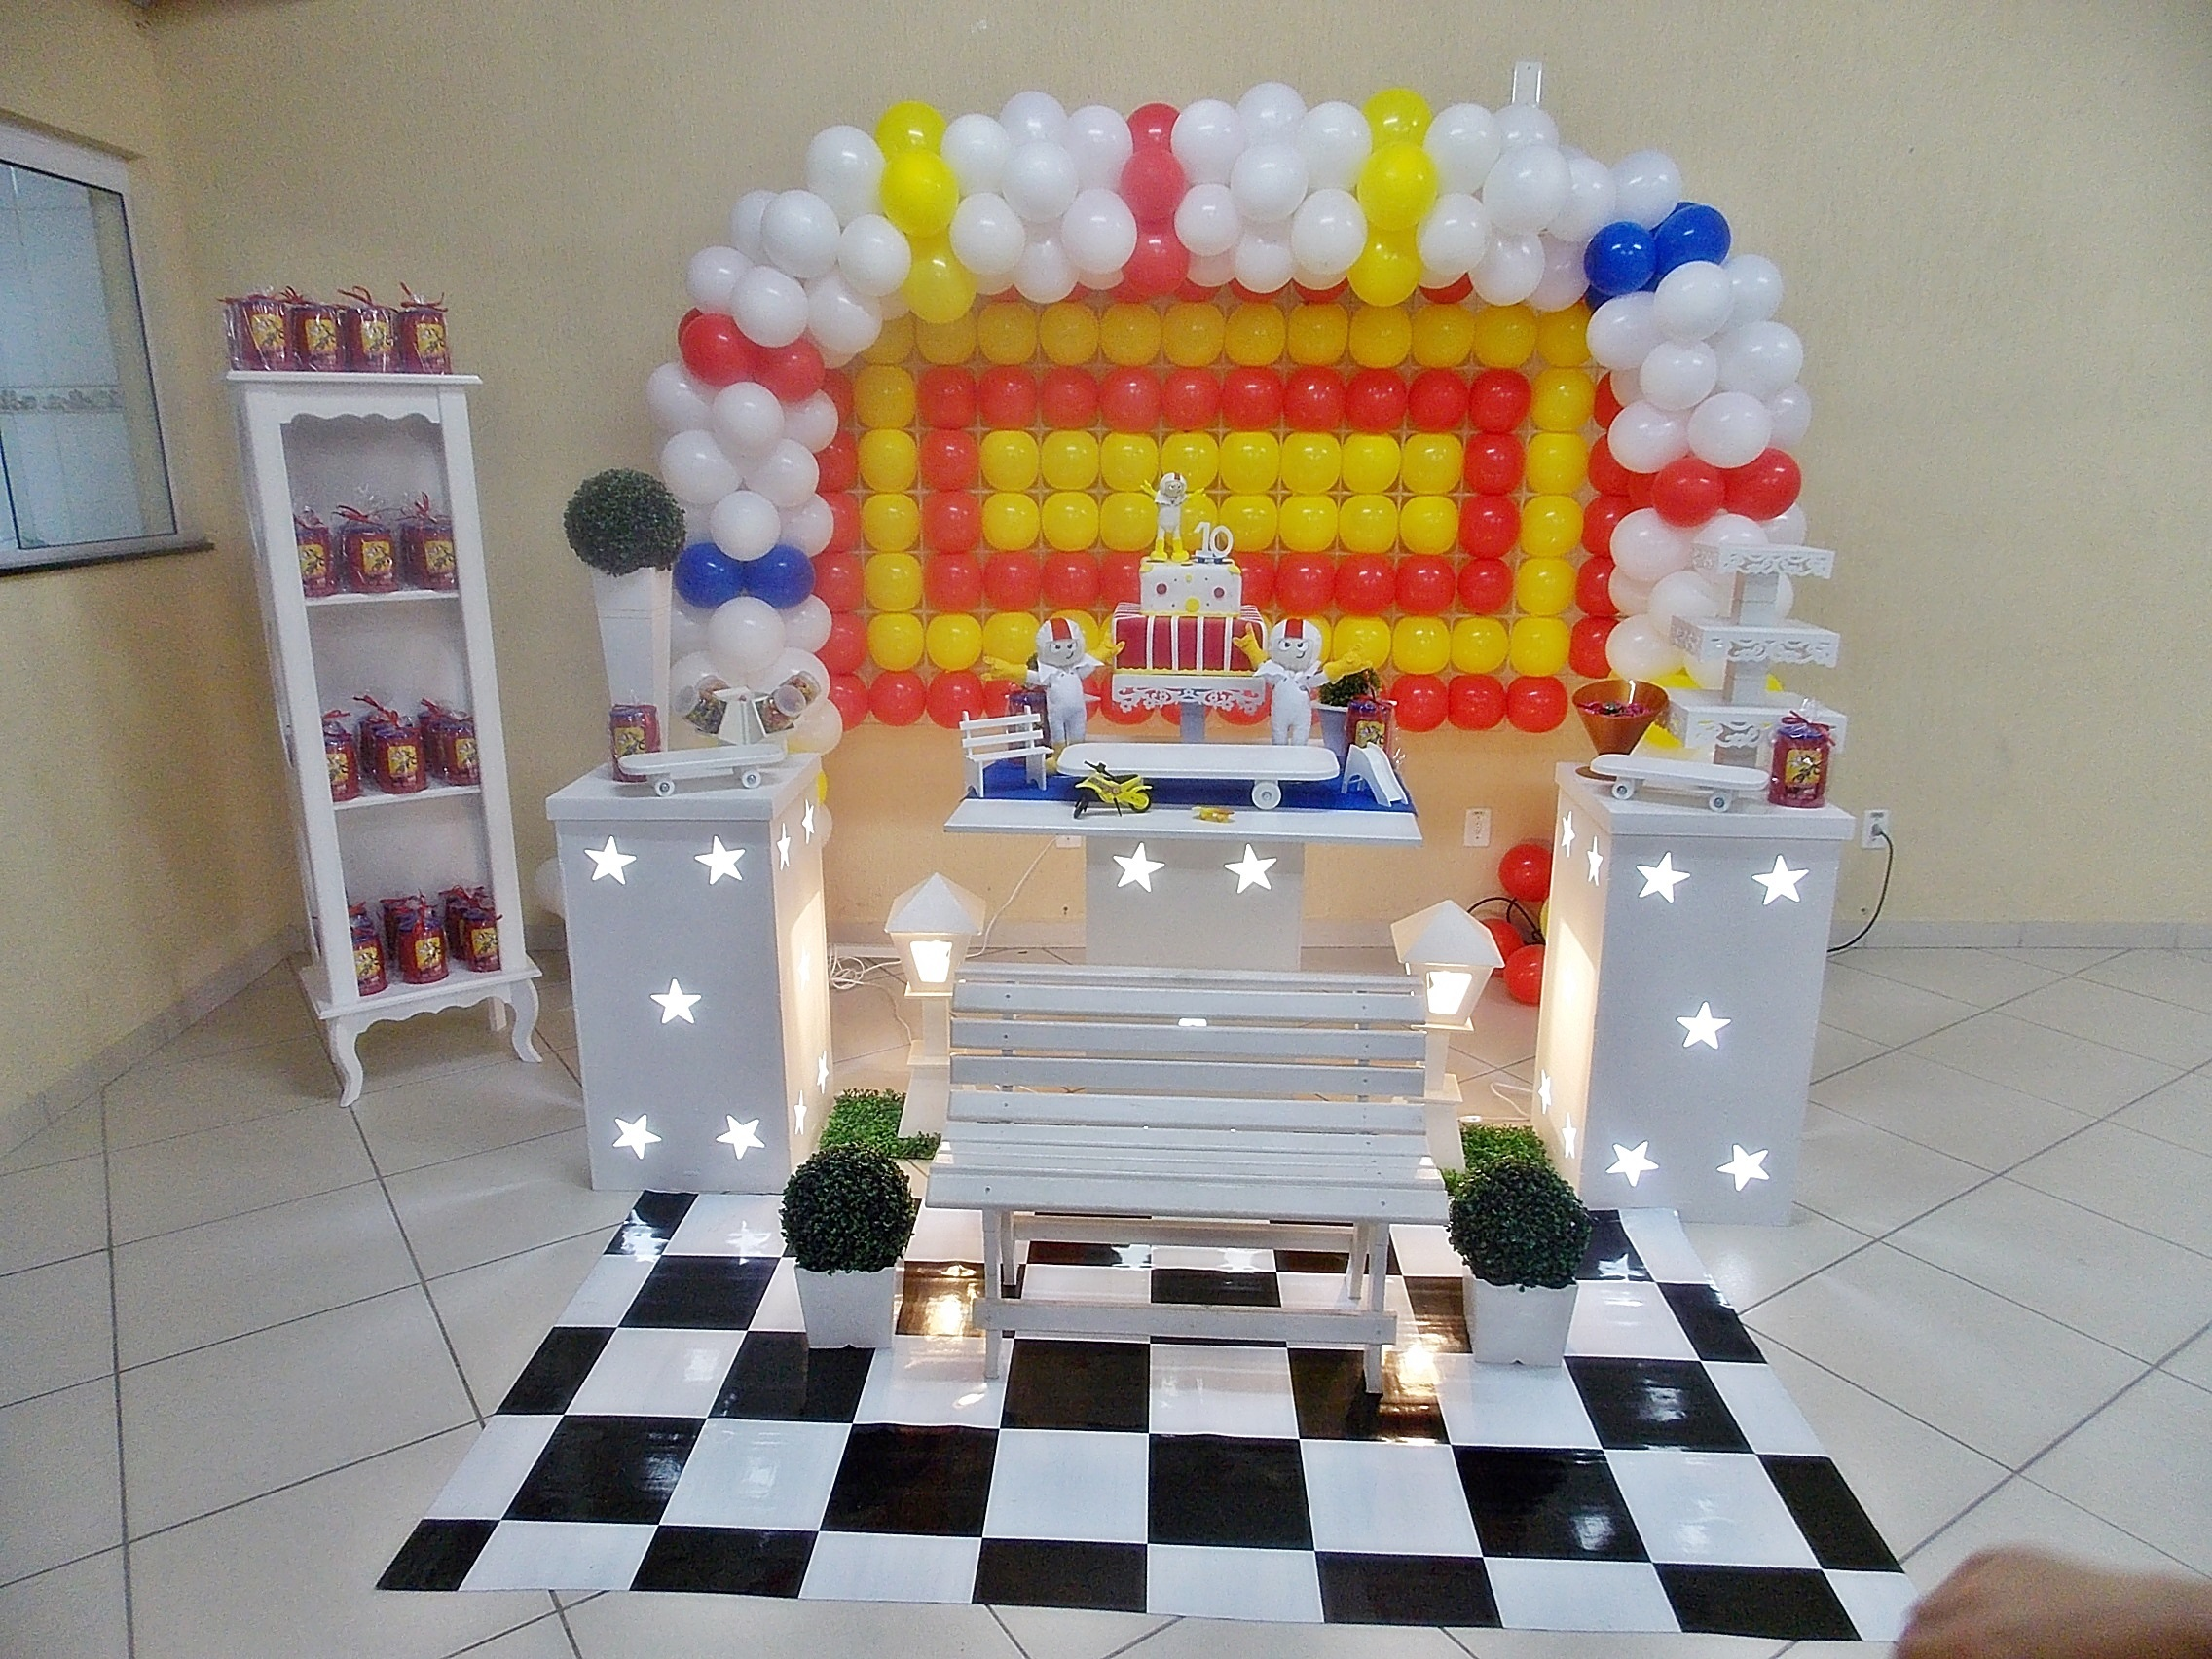 decoracao festa infantil kick buttowski:kick buttowski decoracao infantil kick buttowski decoracao de festa